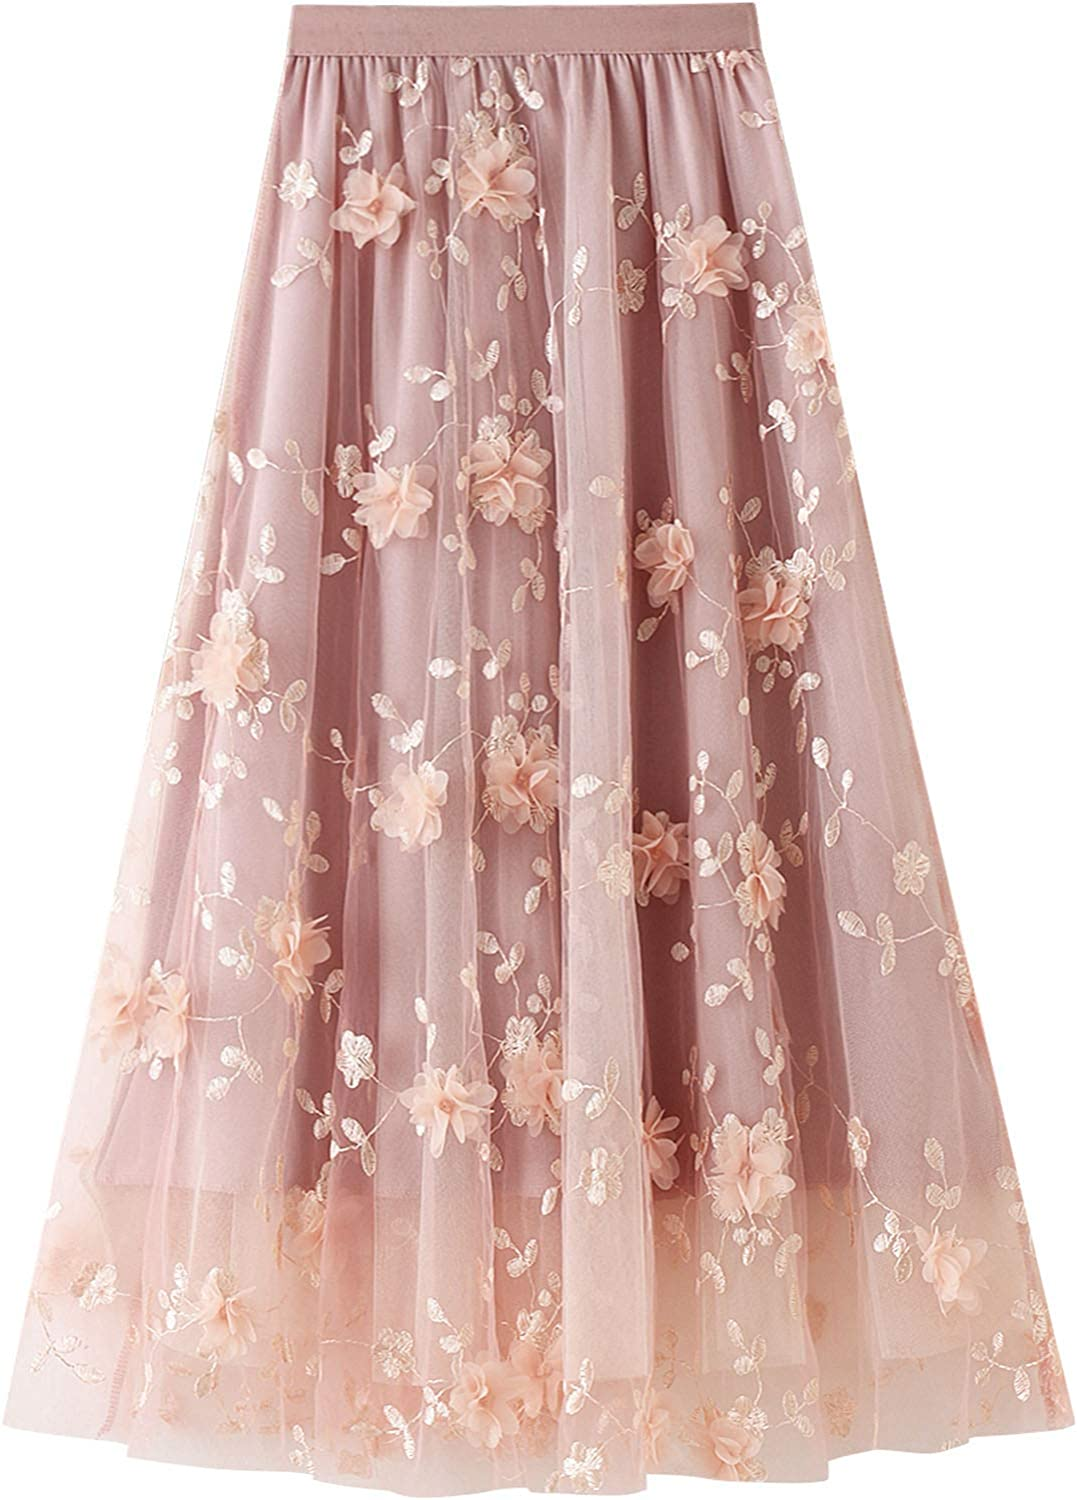 Women Embroidery High Waisted Tulle Skirt Casual Swing Mesh Midi Maxi Skirt